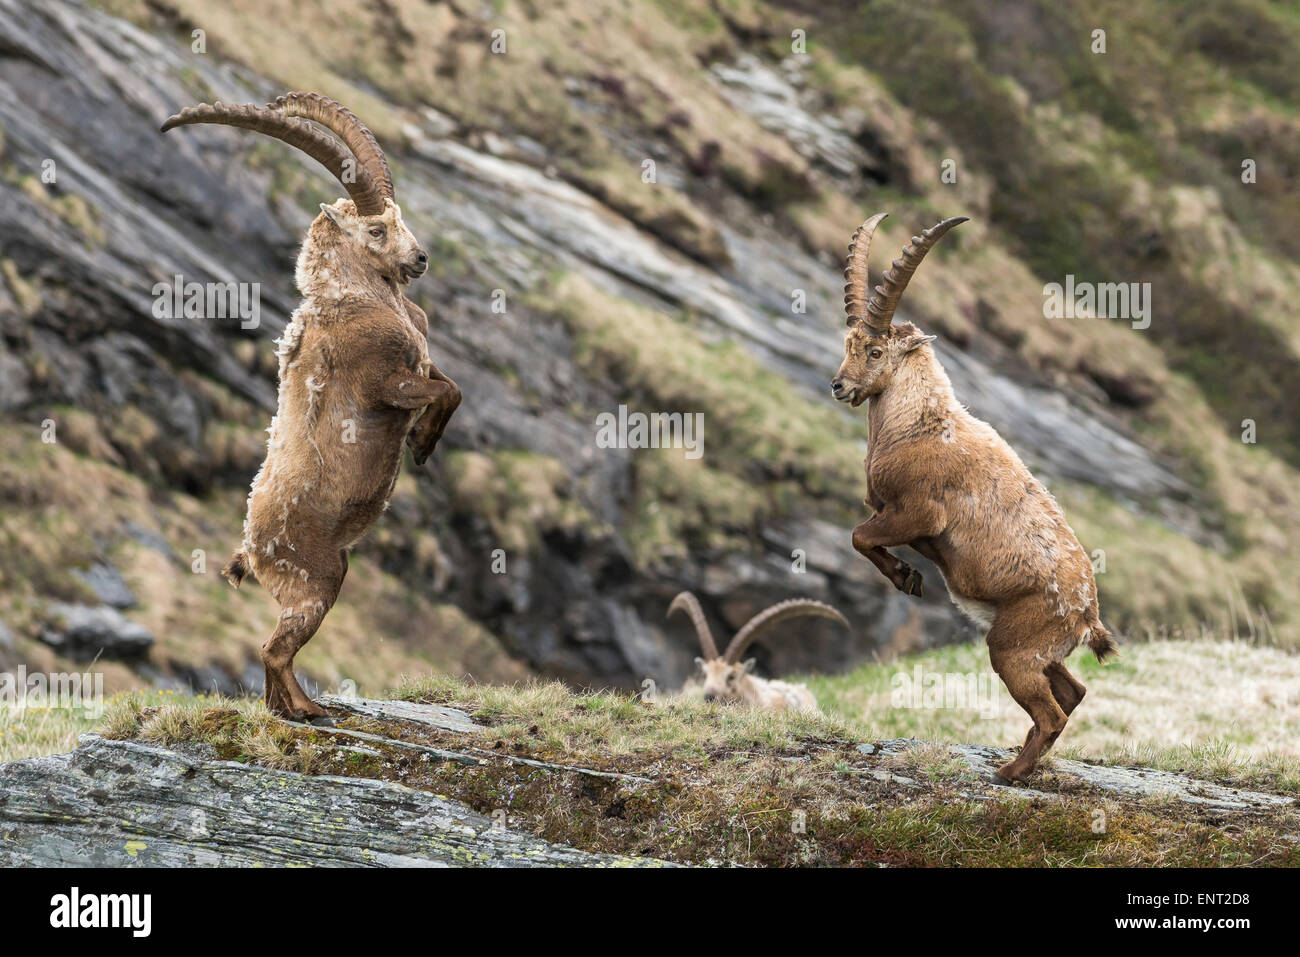 Alpine Ibexes (Capra Ibex), fighting for the dominance hierarchy, High Tauern National Park, Carinthia, Austria - Stock Image